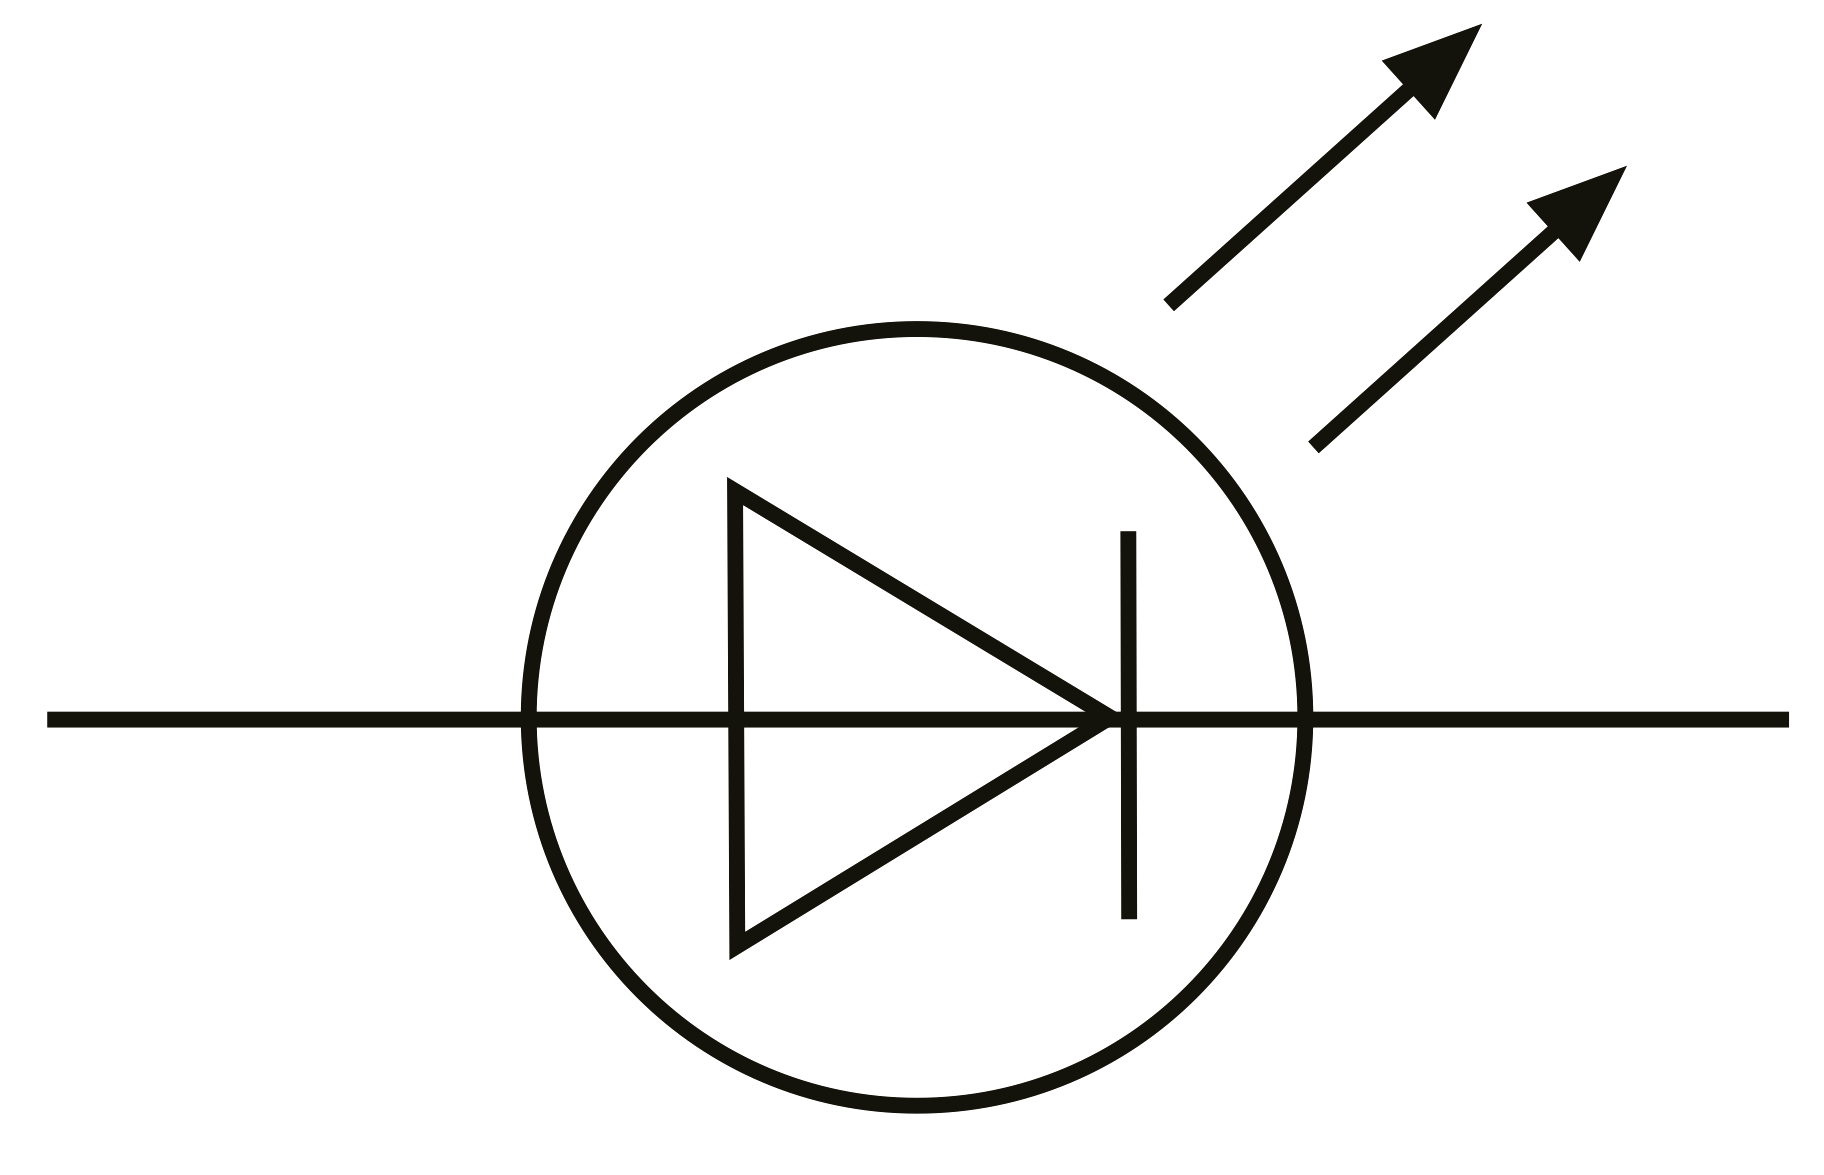 Led Symbol Schematic